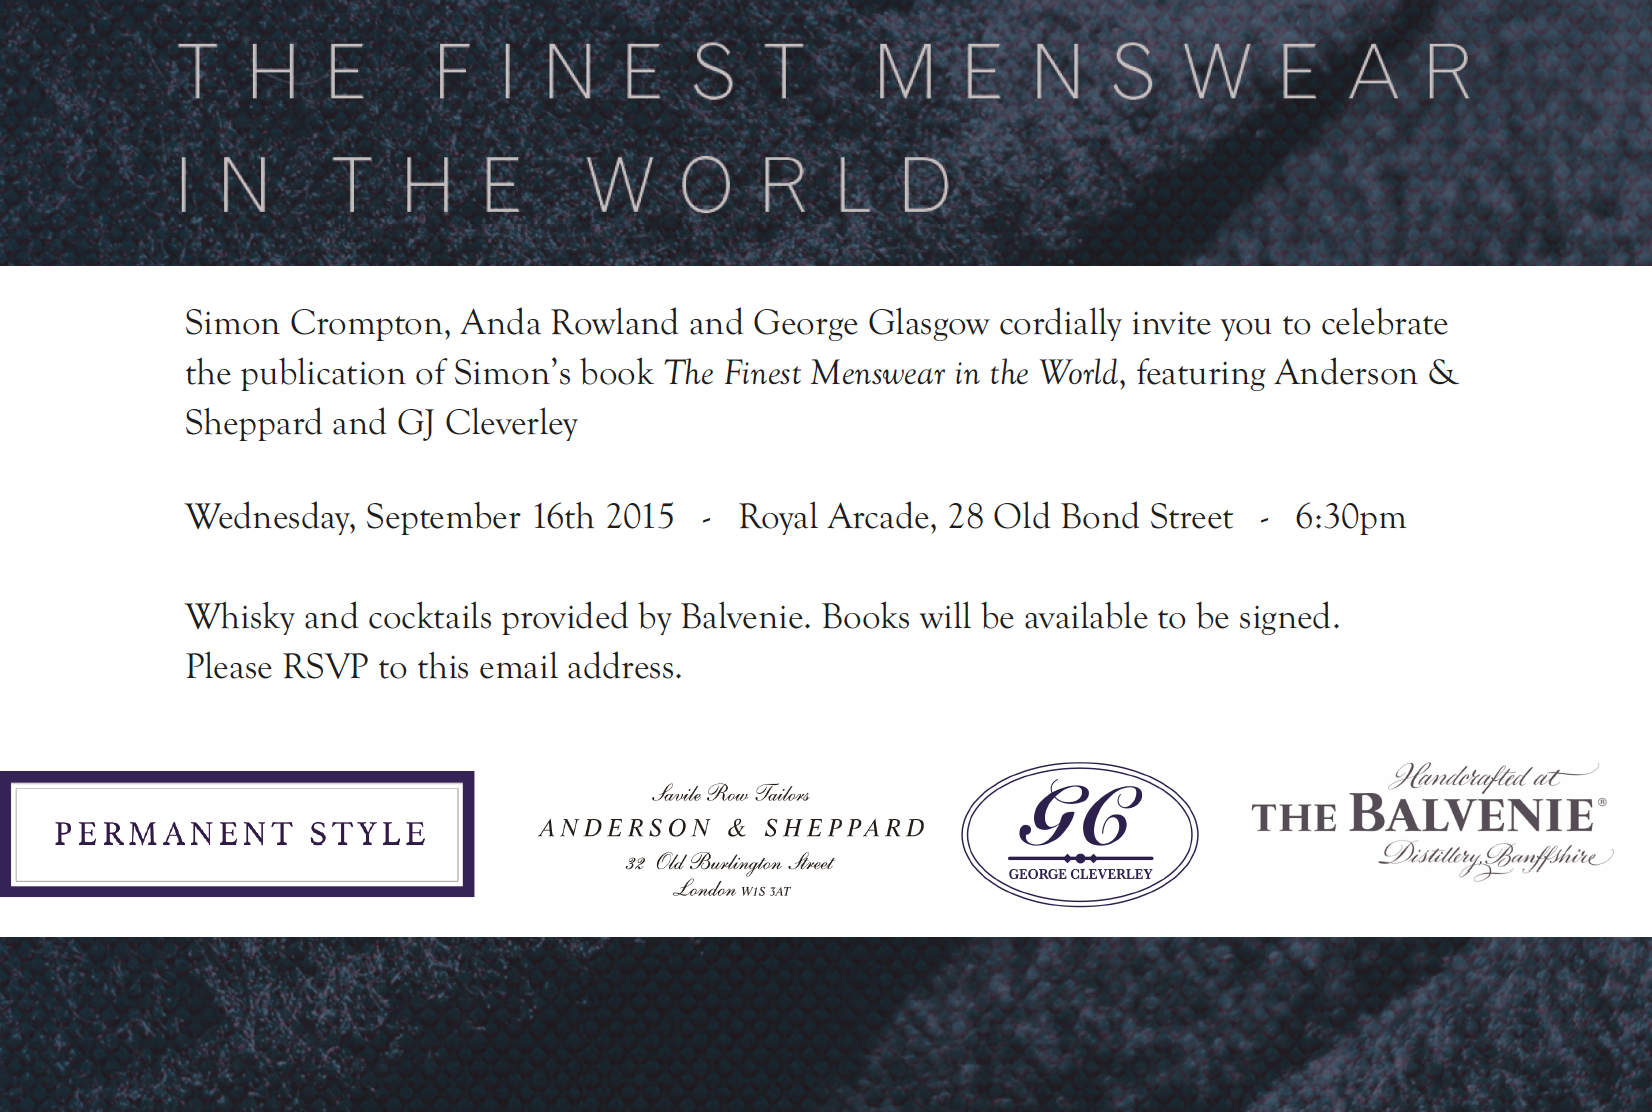 Come to the book launch: The Finest Menswear in the World